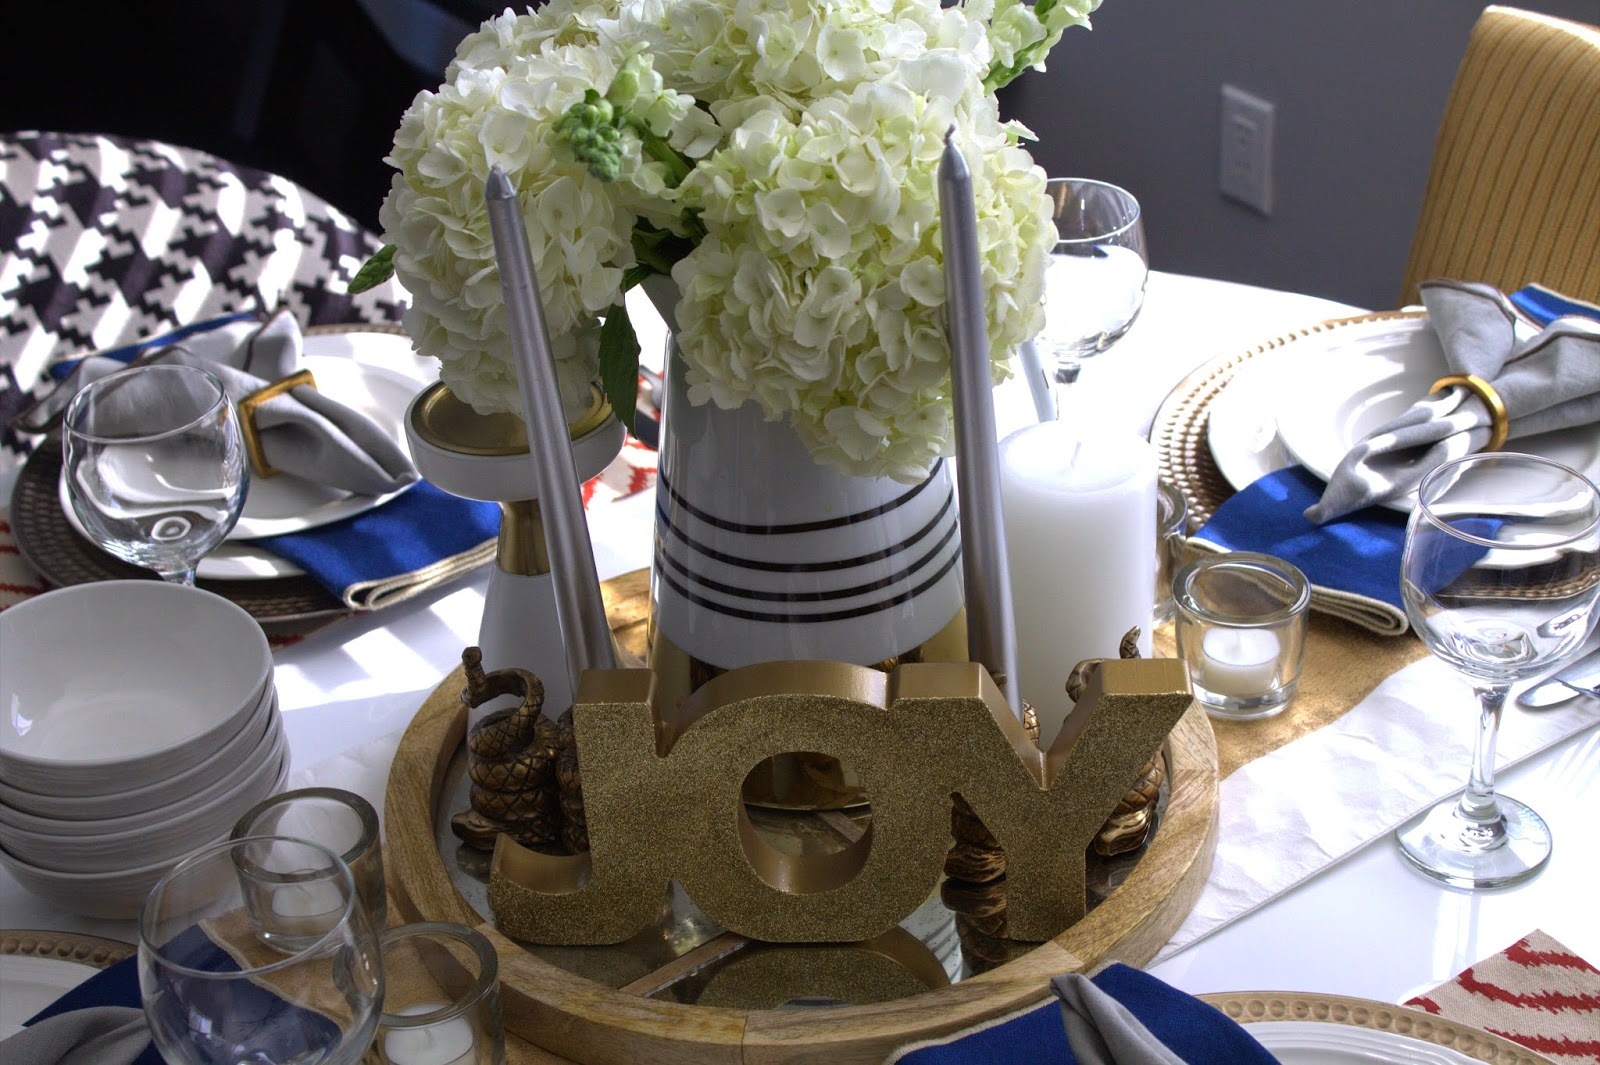 Live Laugh Decorate: Style Tips For Your Holiday Table Decor